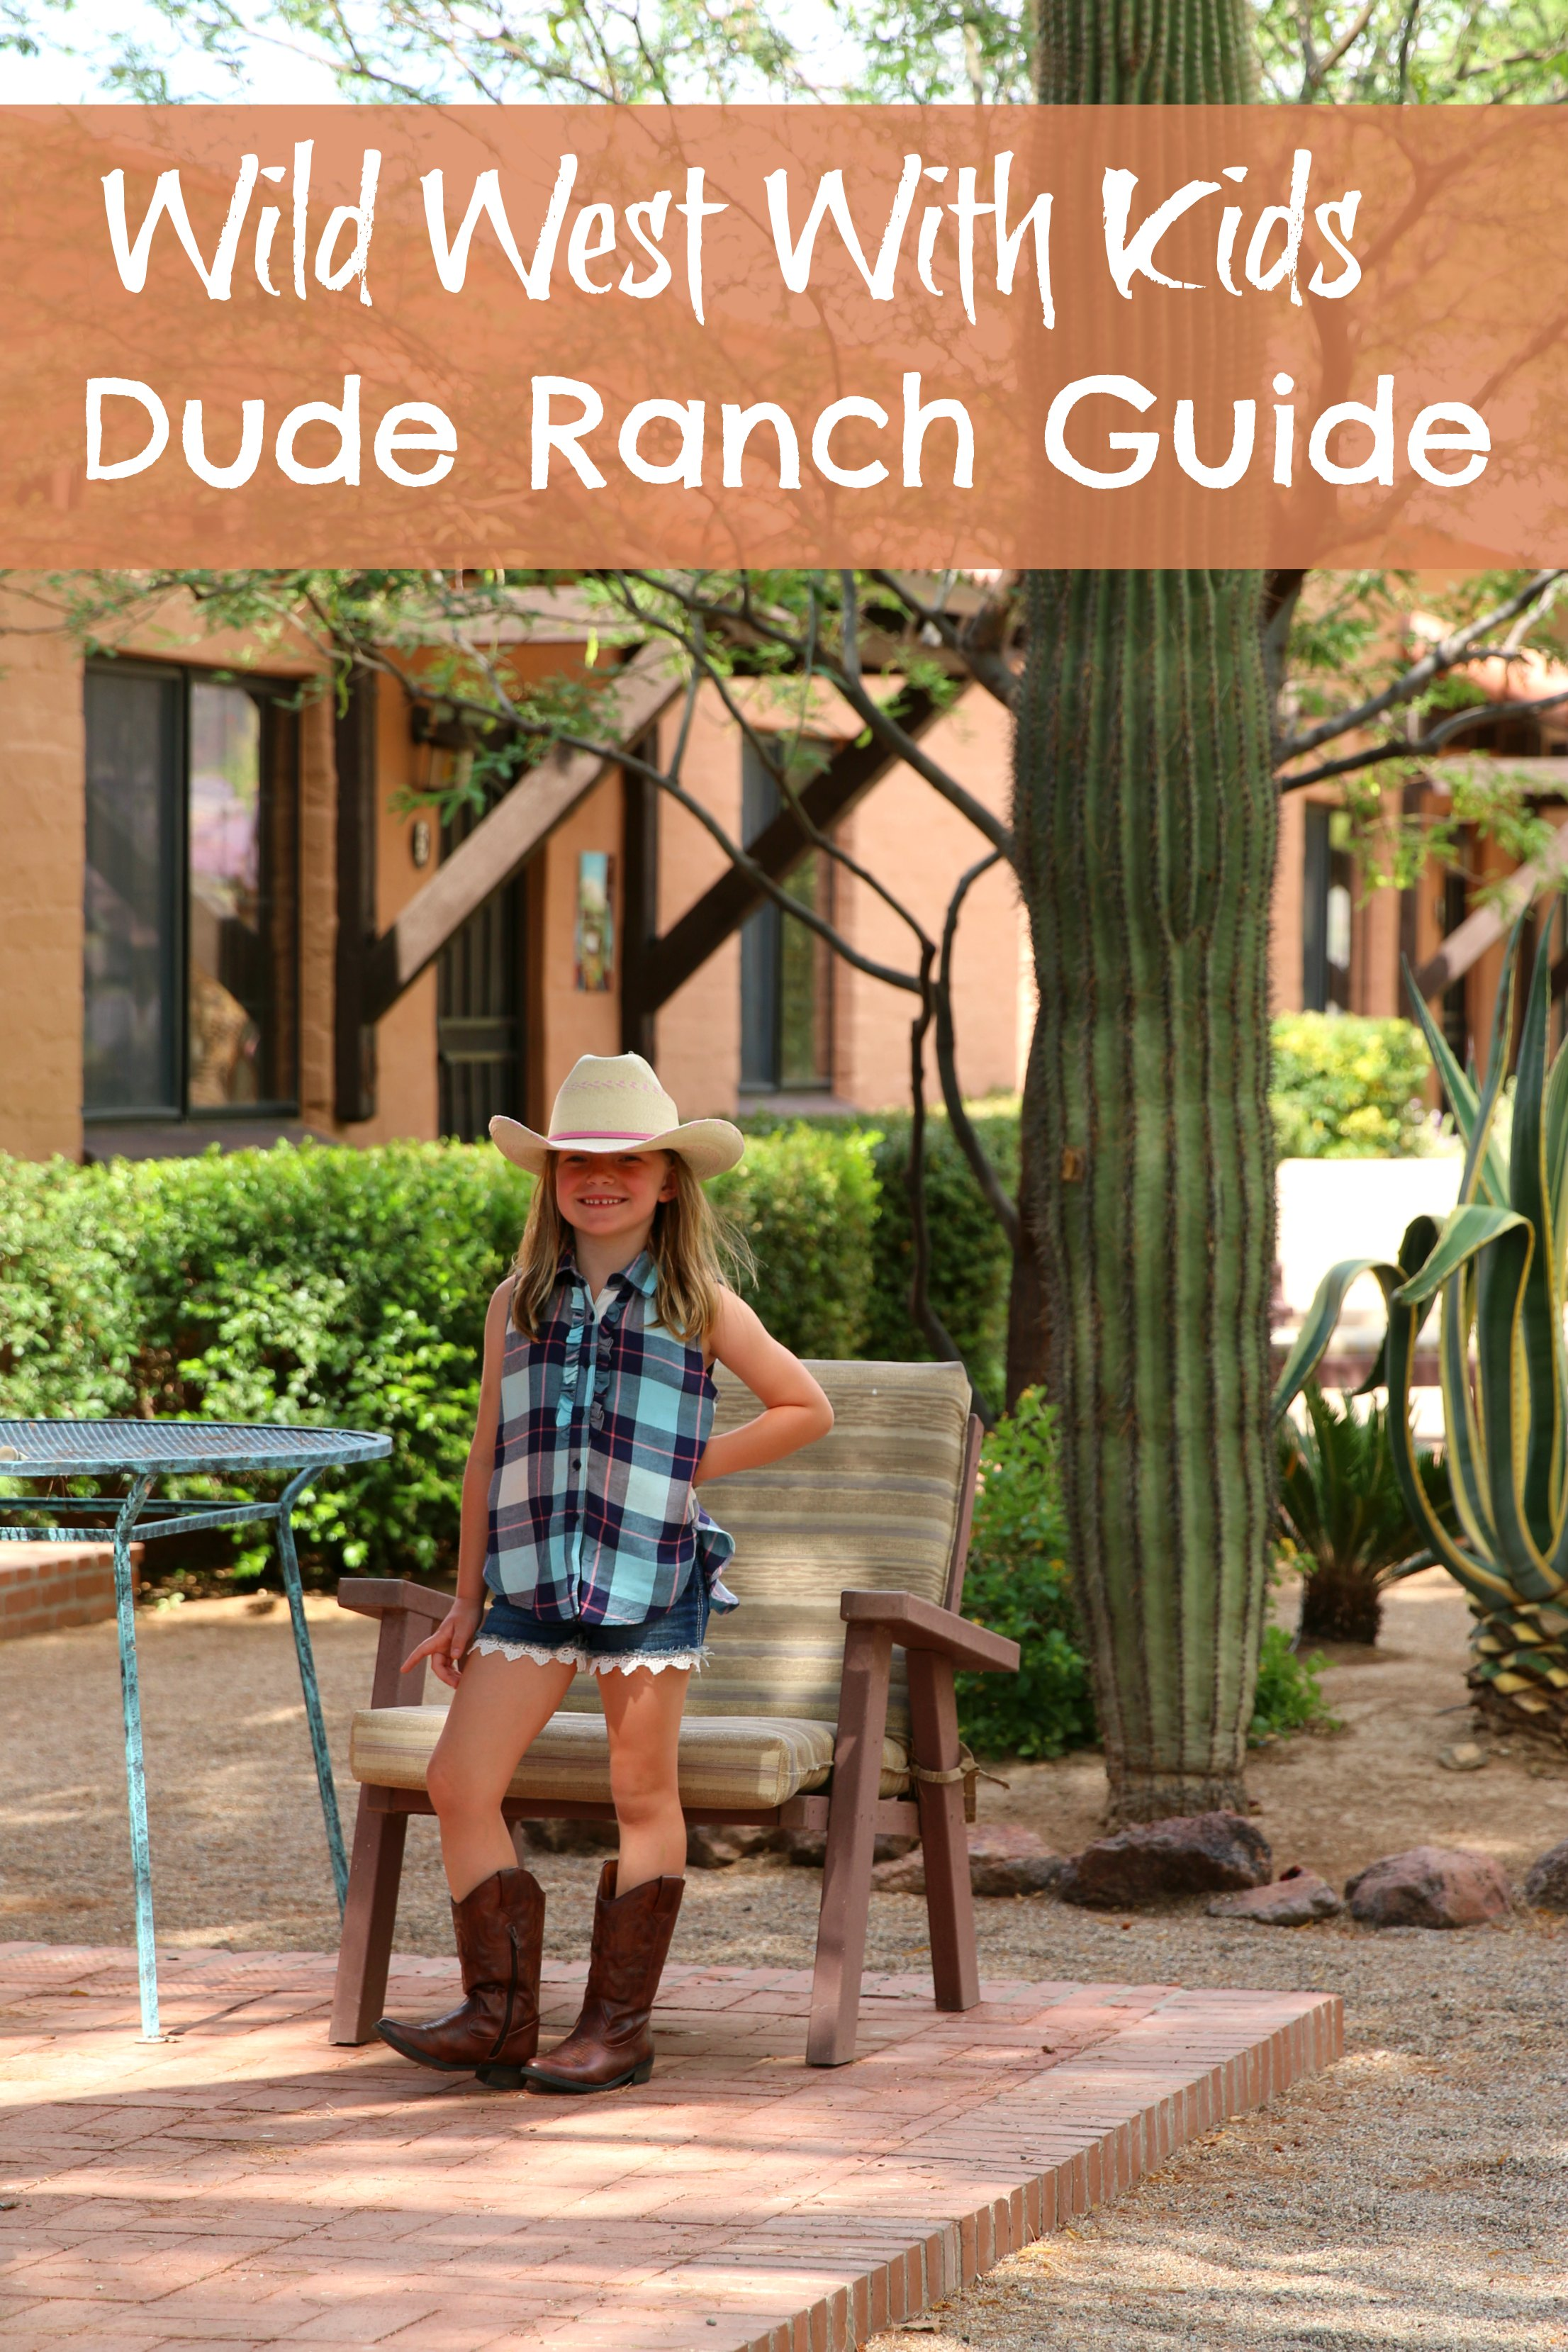 wild west with kids dude ranch guide